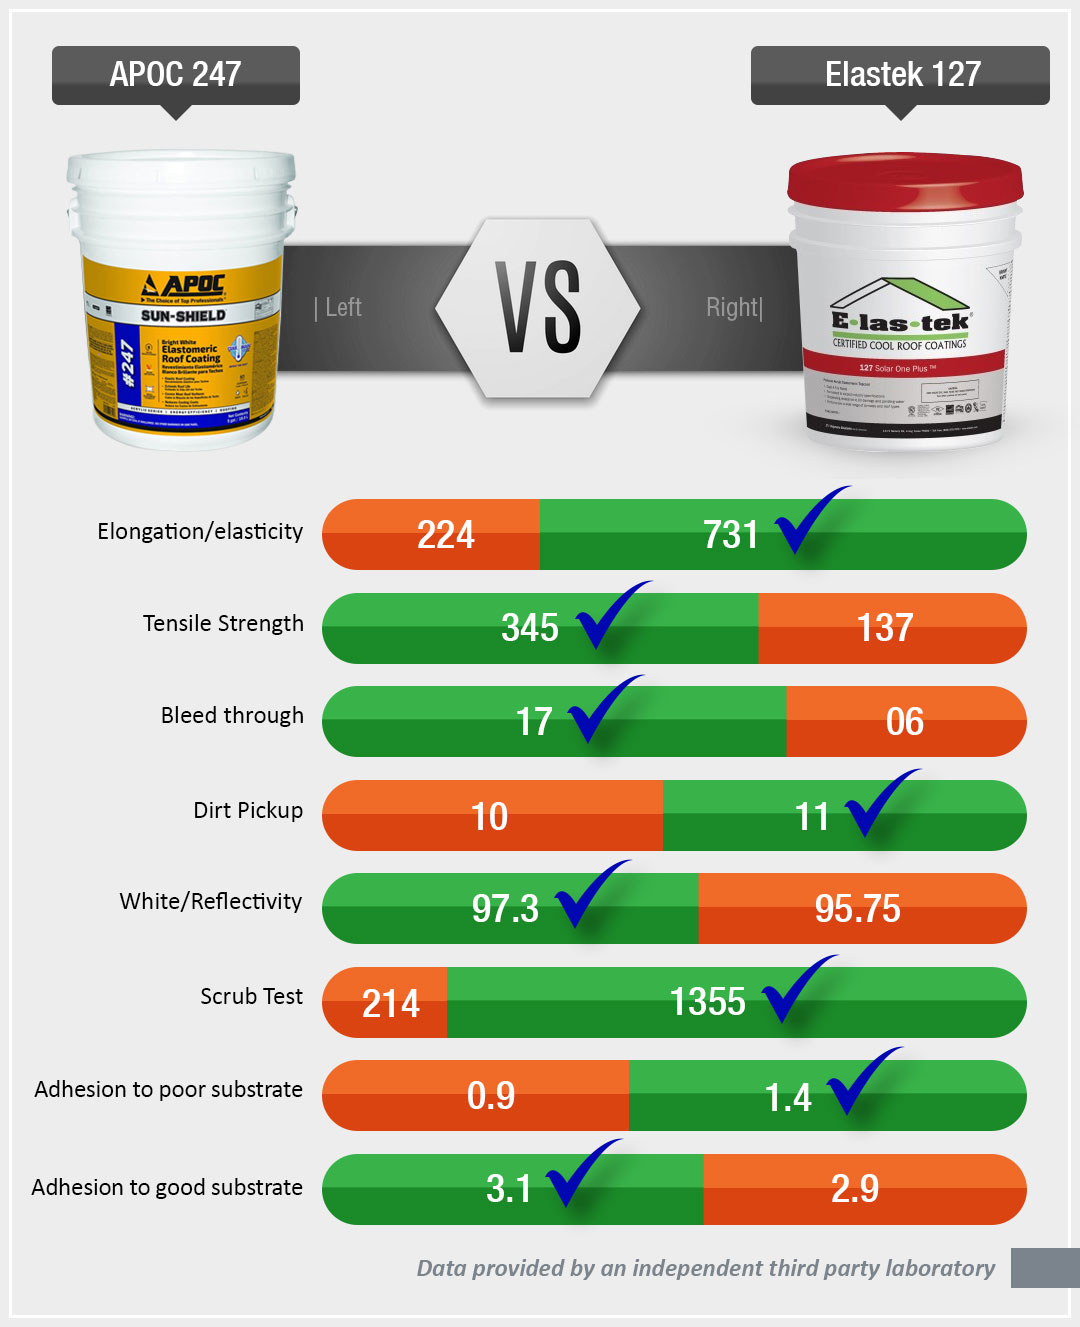 Apoc 247 Vs Elastek 127 Consumer Roof Coatings Reports